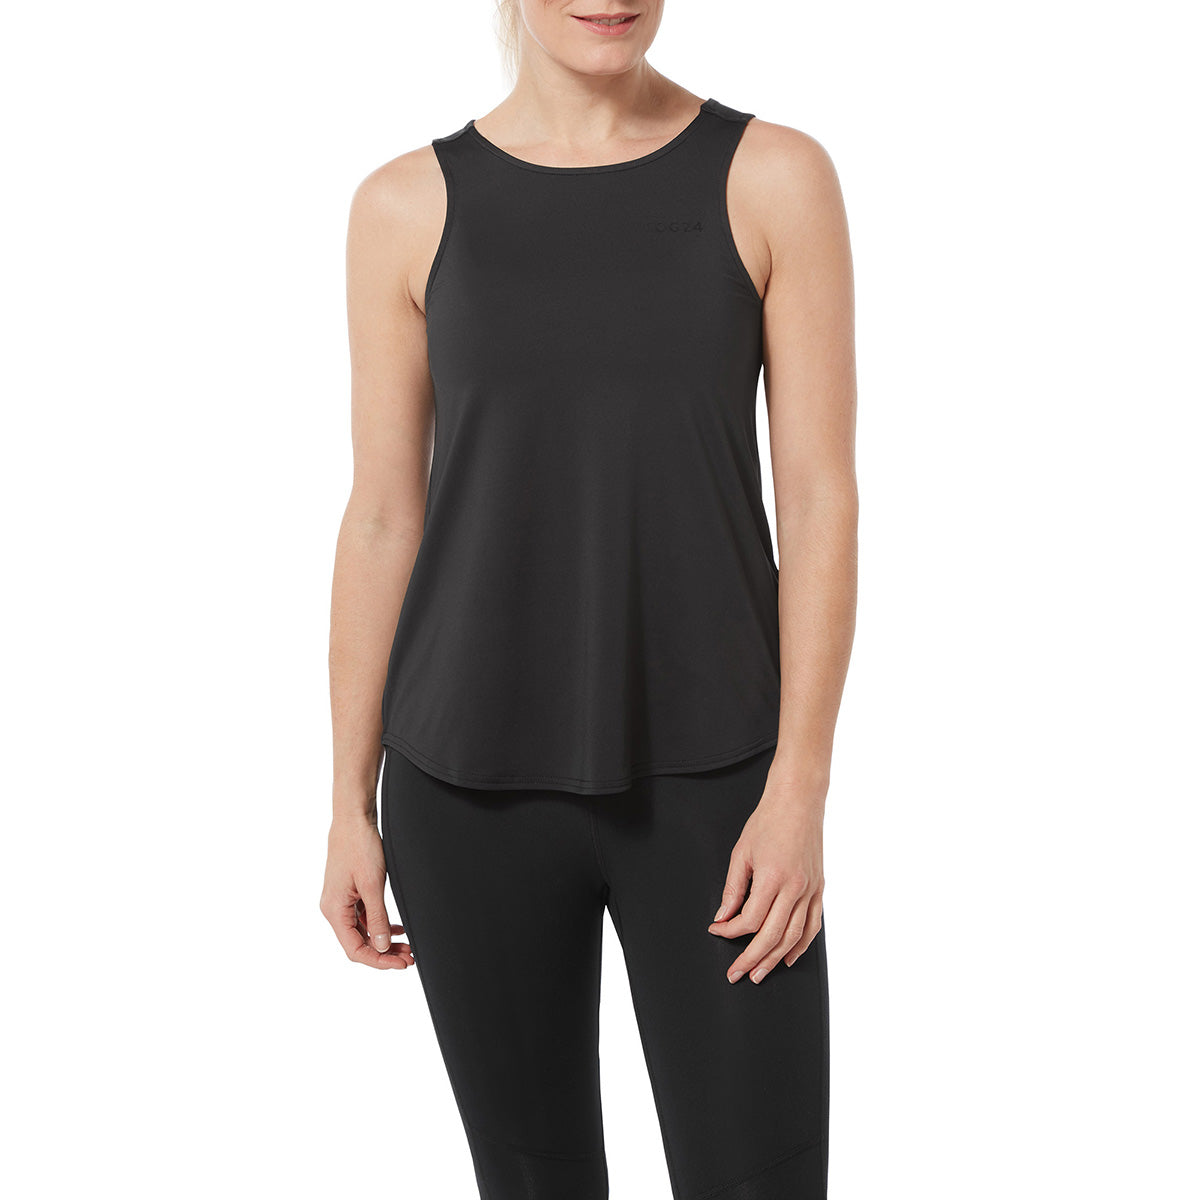 Flinn Womens Performance Vest - Black